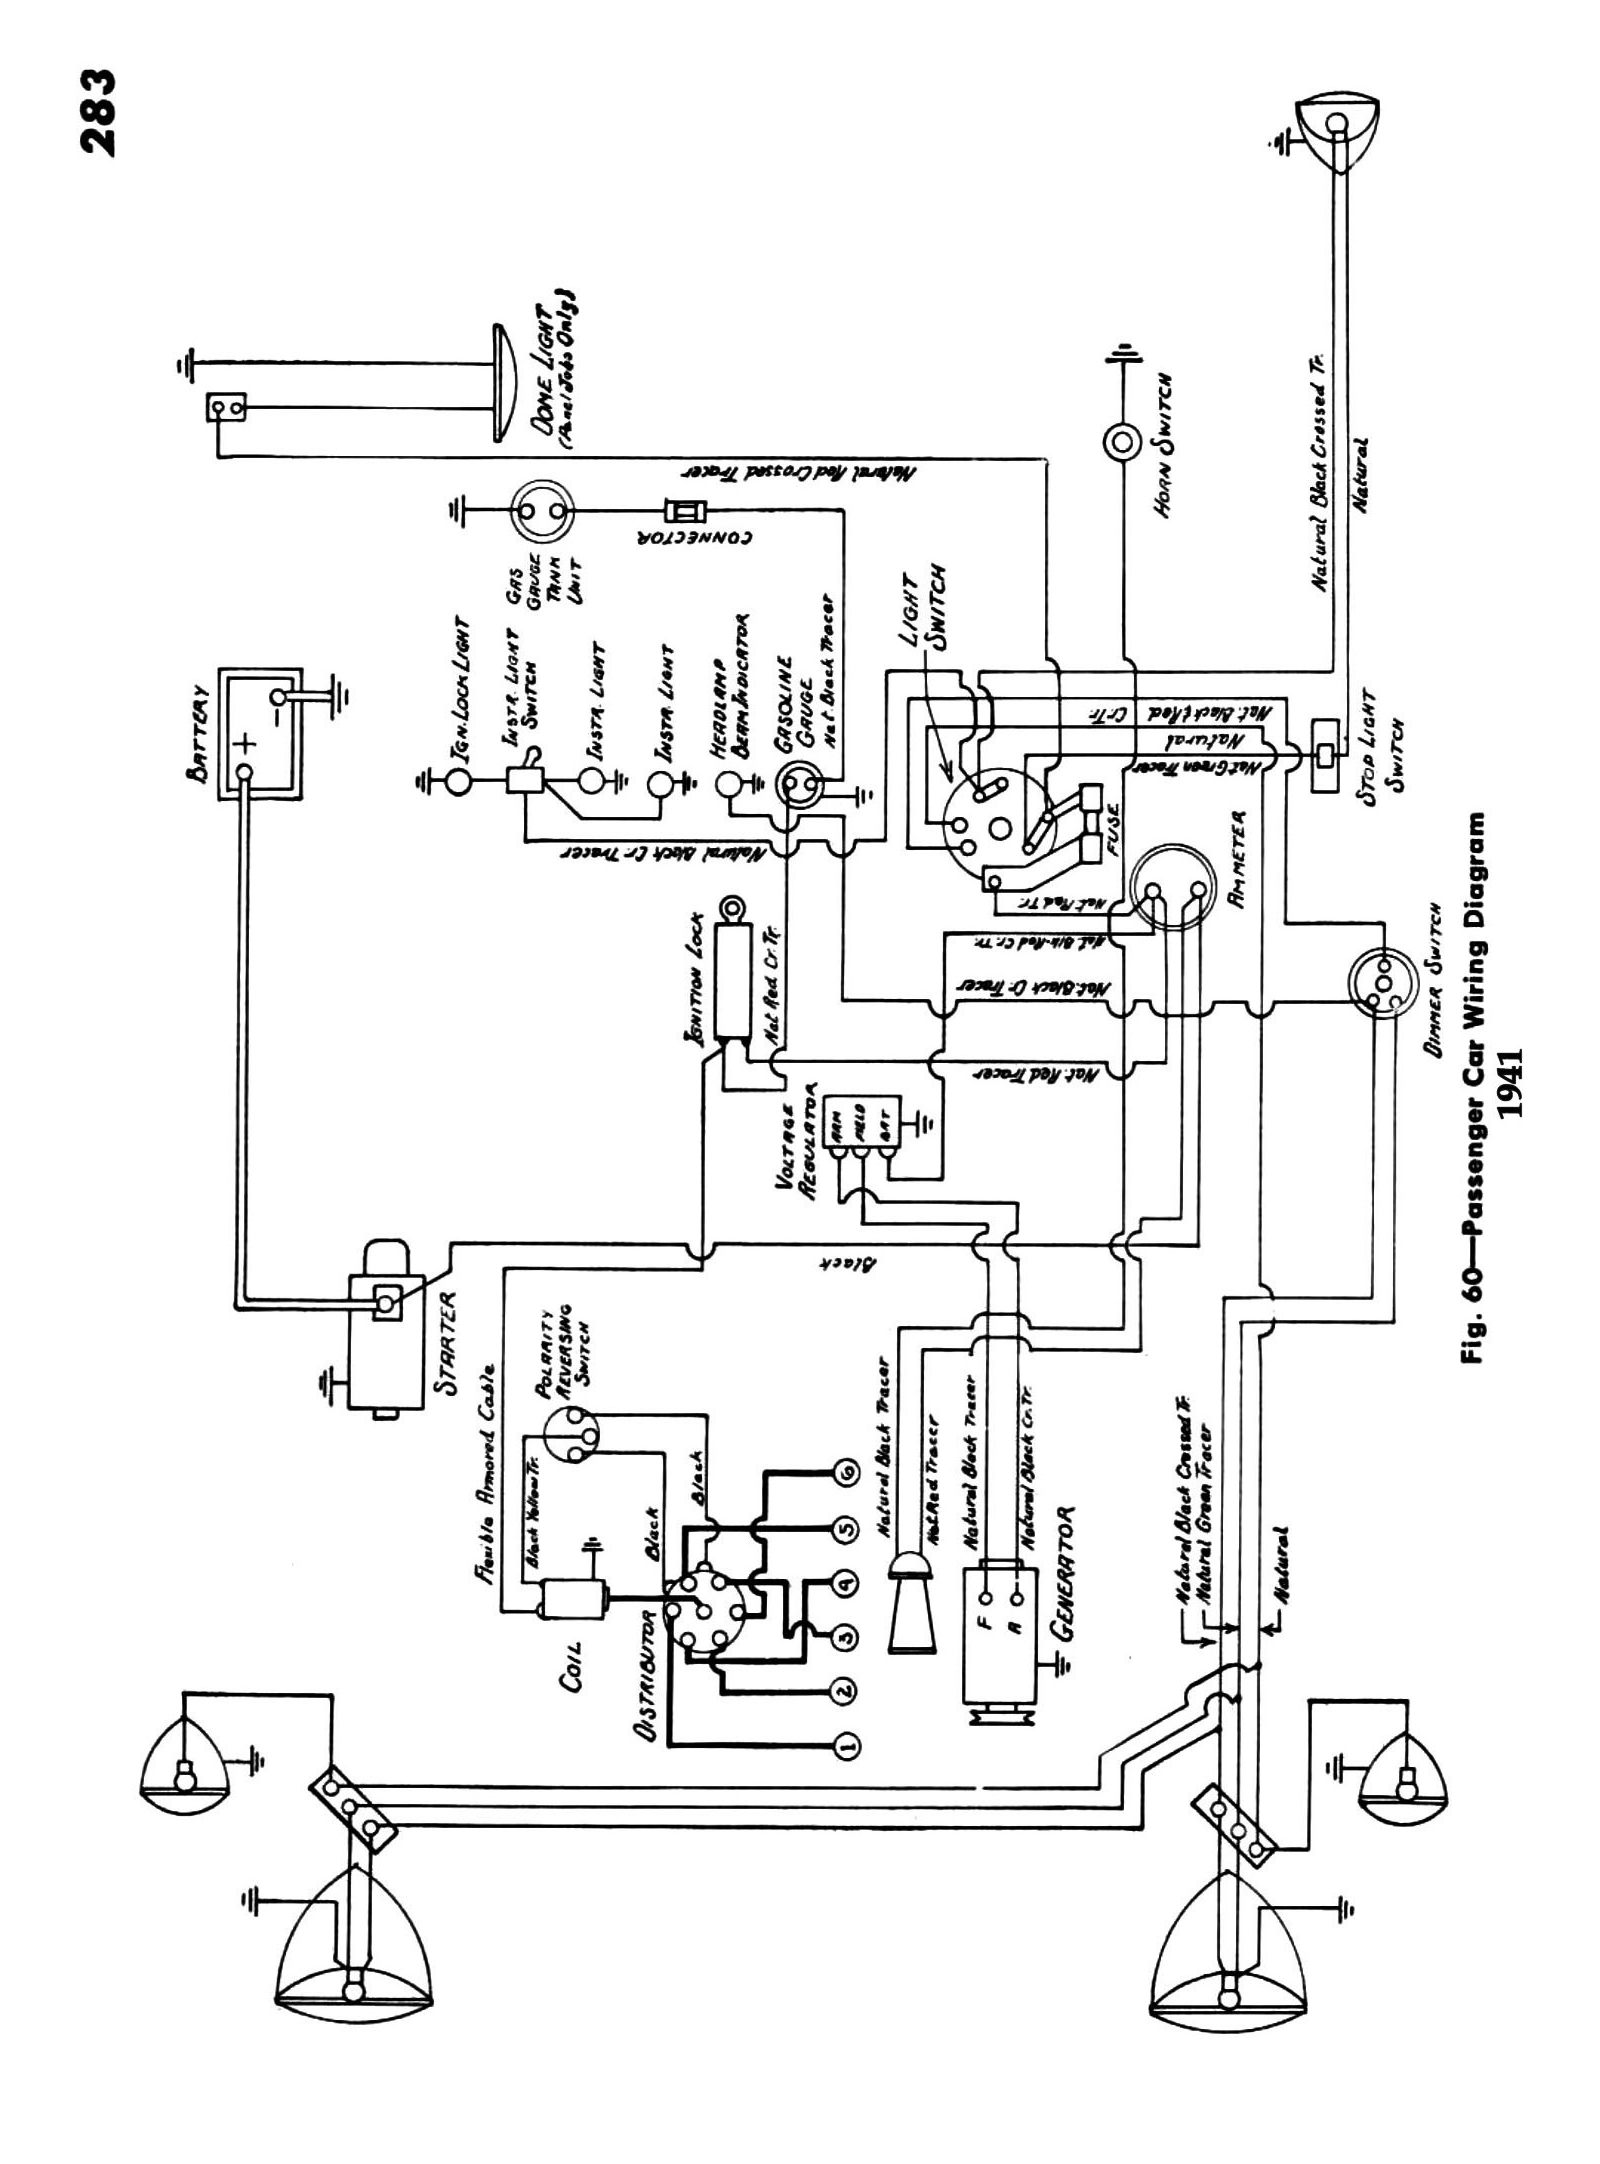 1929 Ford Engine Wiring Diagram Electrical Drawing 1987 Taurus Diagrams Harness Chevy Rh Oldcarmanualproject Com 2007 Model A Ignition